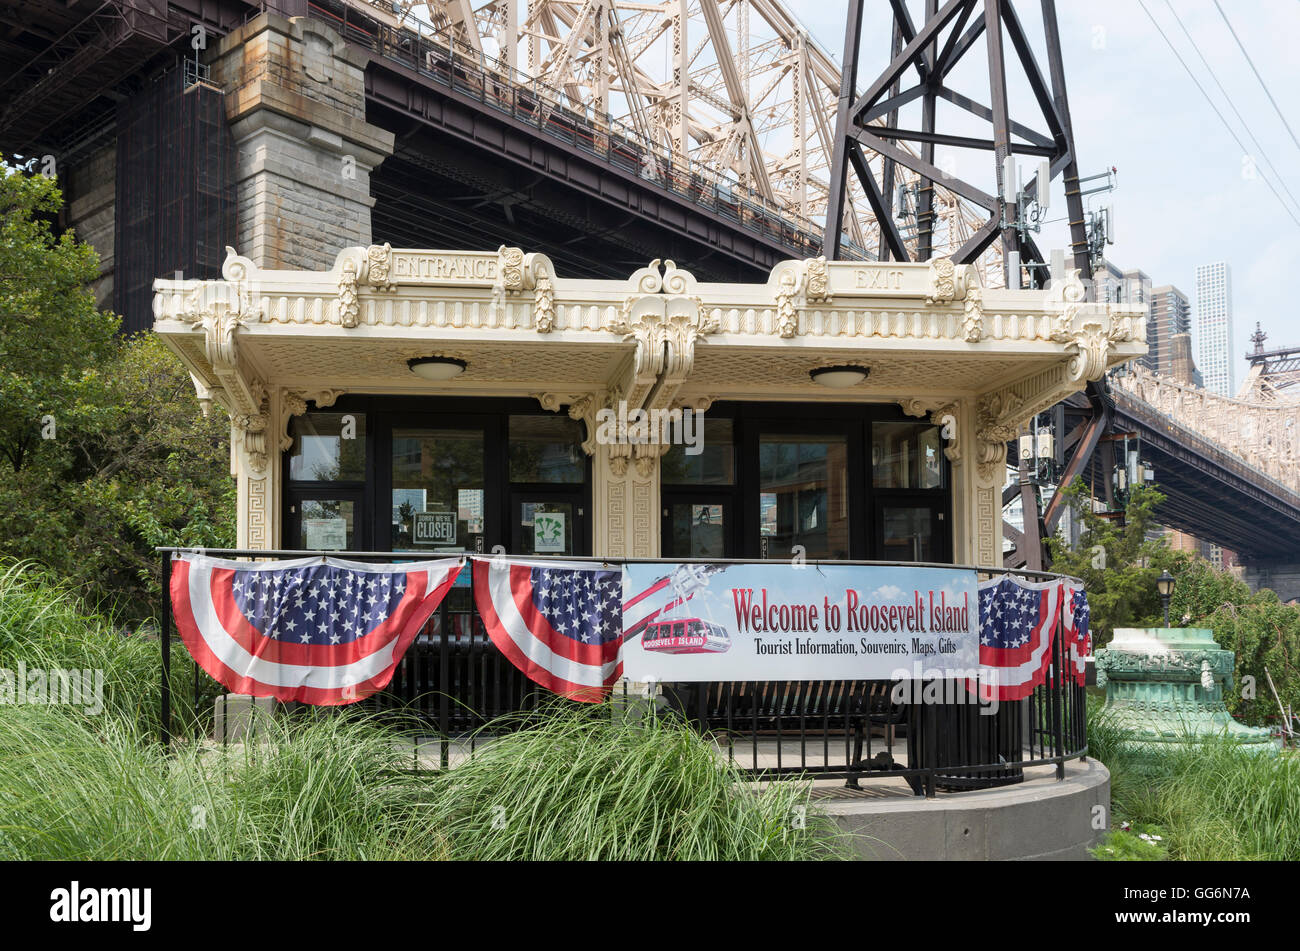 Roosevelt Island visitor center (an old Queensboro Bridge Trolley Kiosk) in New York City - Stock Image